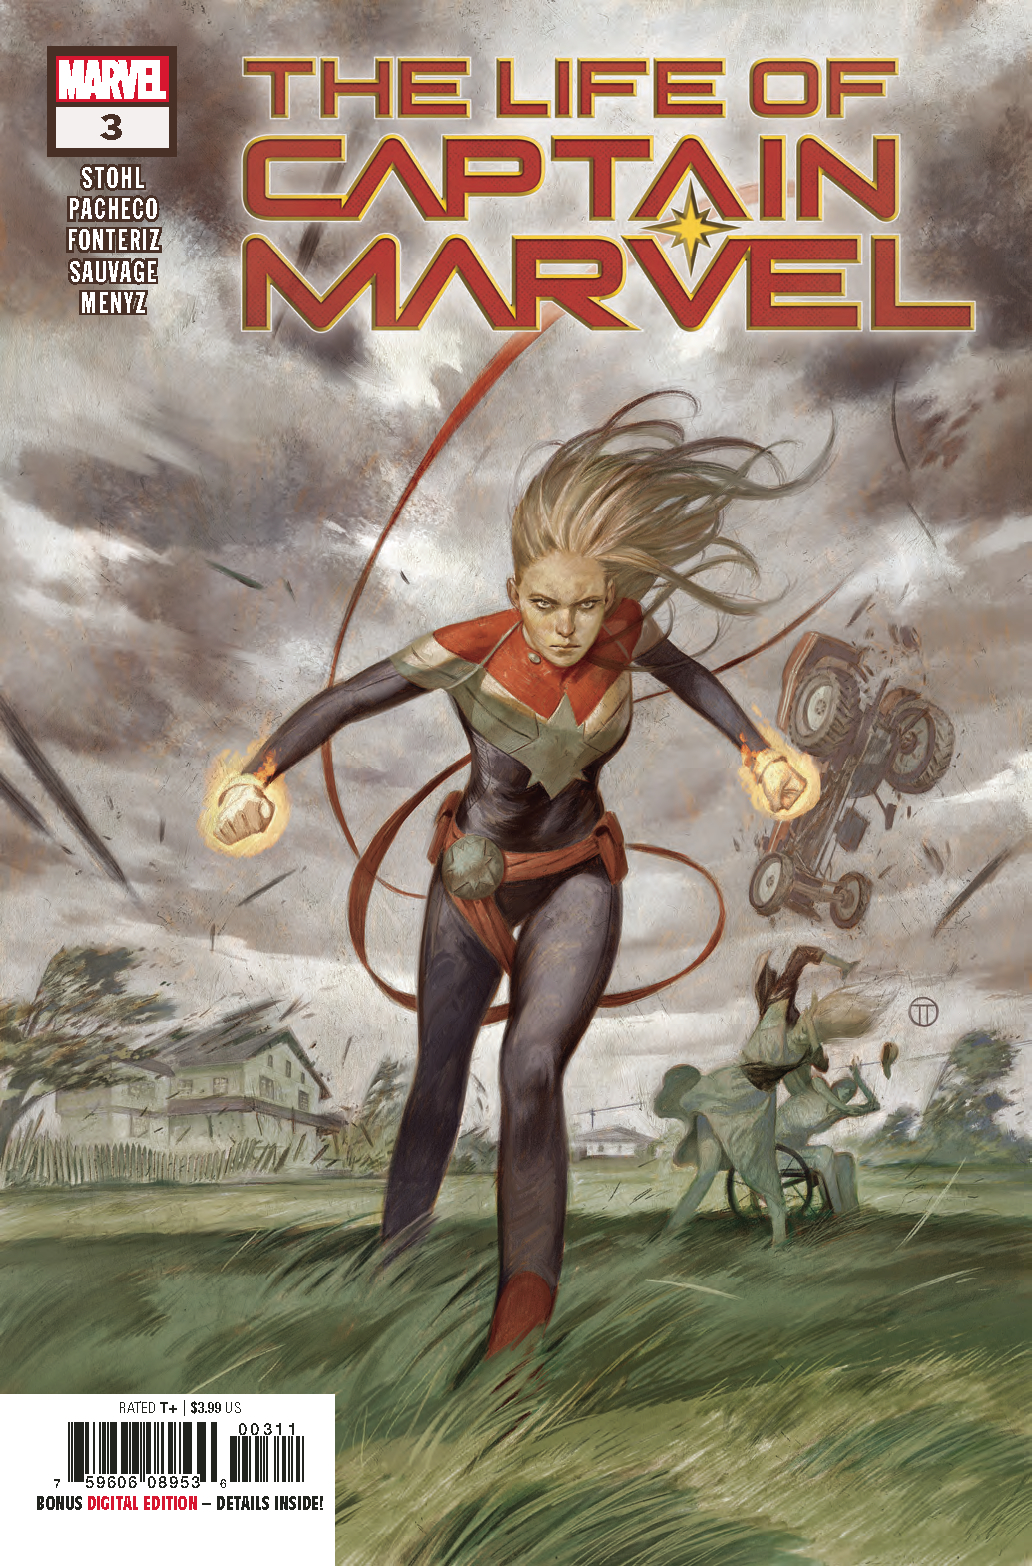 LIFE OF CAPTAIN MARVEL #3 (OF 5)